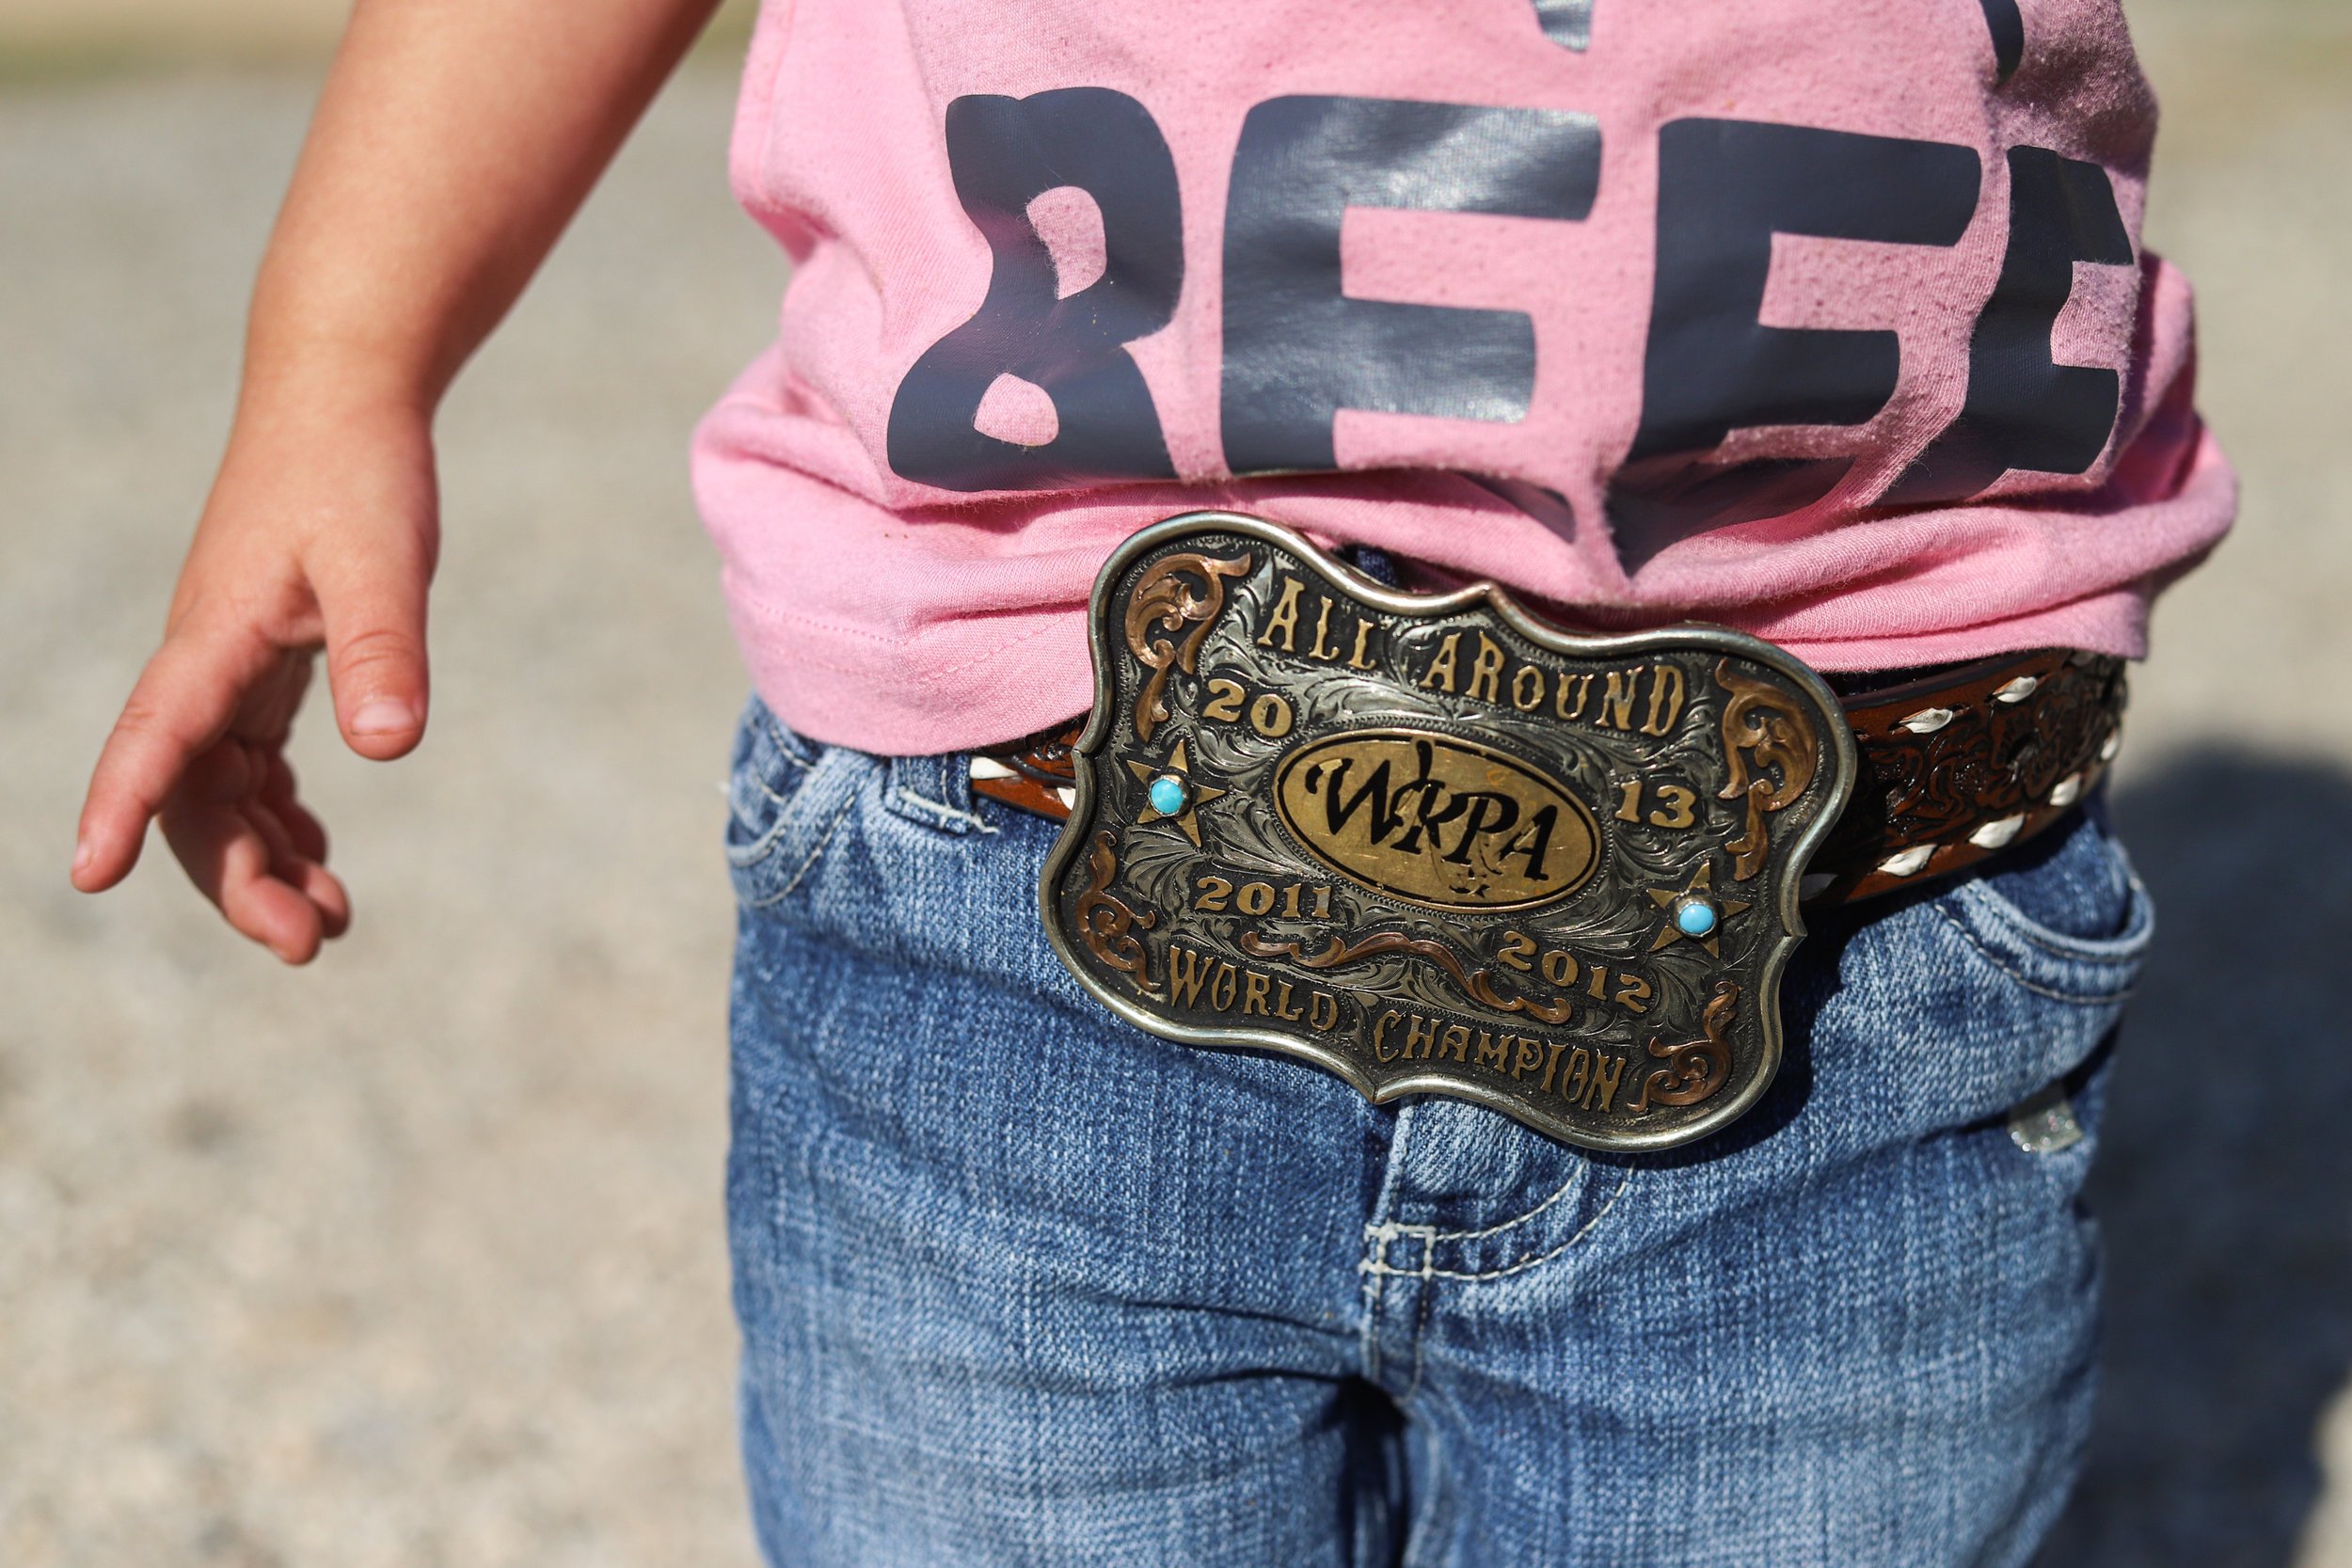 2-year-old Sonora Stierwalt proudly wears one of her mother's rodeo buckles at Stierwalt Ranch in Burbank, Oklahoma.